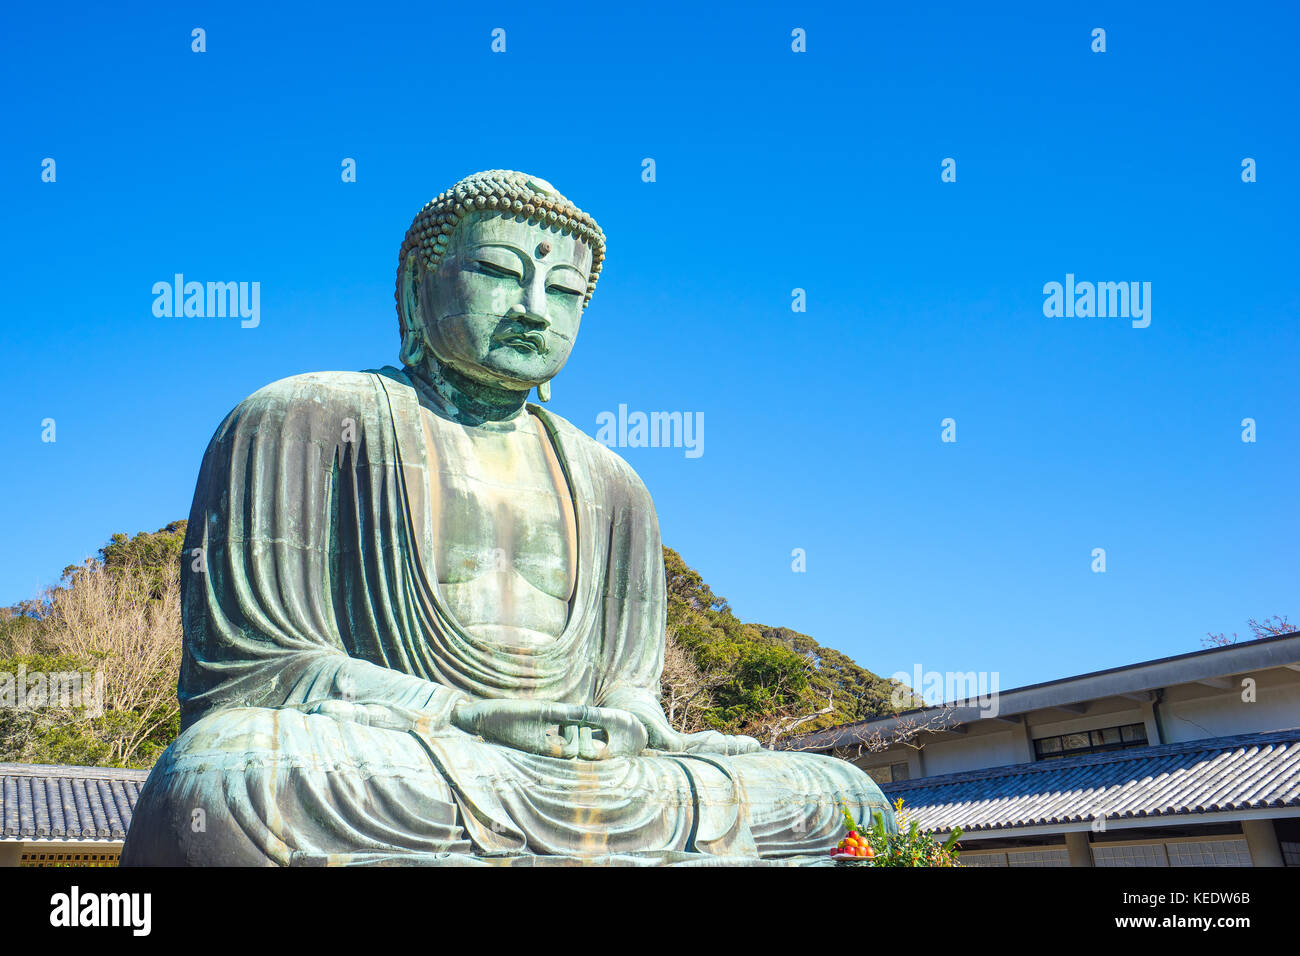 Daibutsu the great buddha at kotokuin temple in Kamakura, Kanagawa Prefecture, Japan. Stock Photo